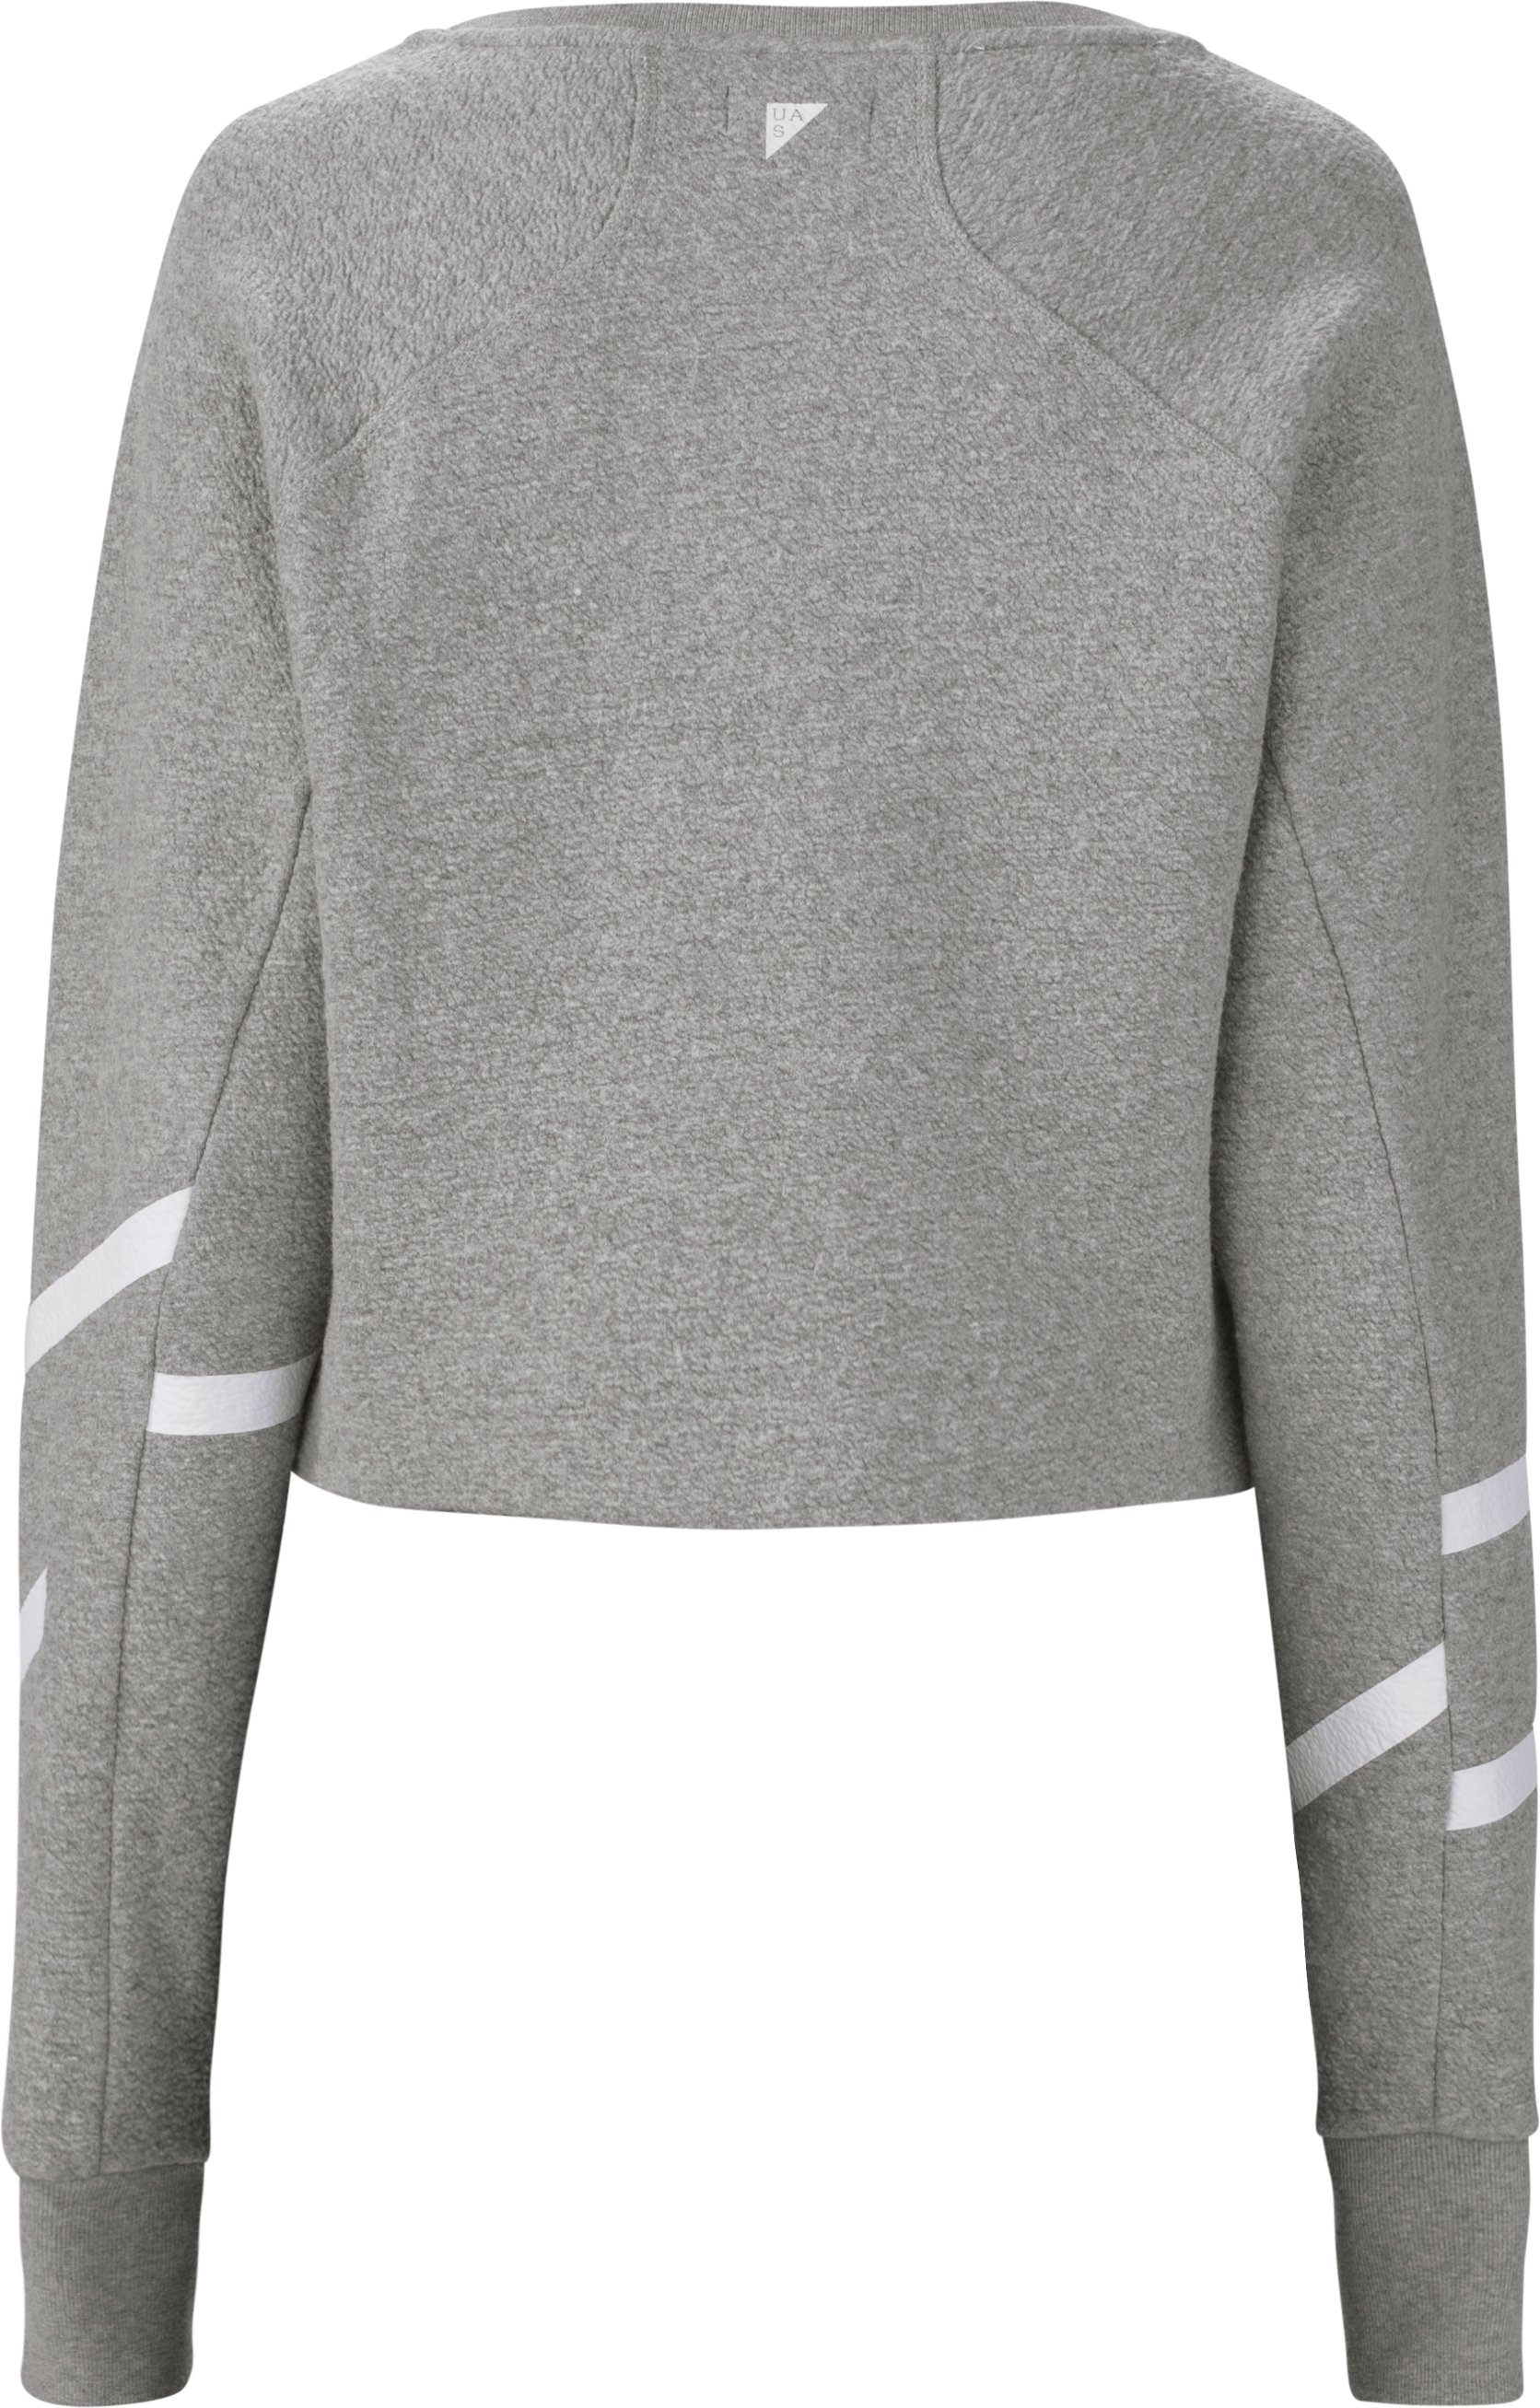 Women's UAS Hockey Textured Wool Fleece ¼ Zip Sweatshirt , LIGHT HEATHER GRAY